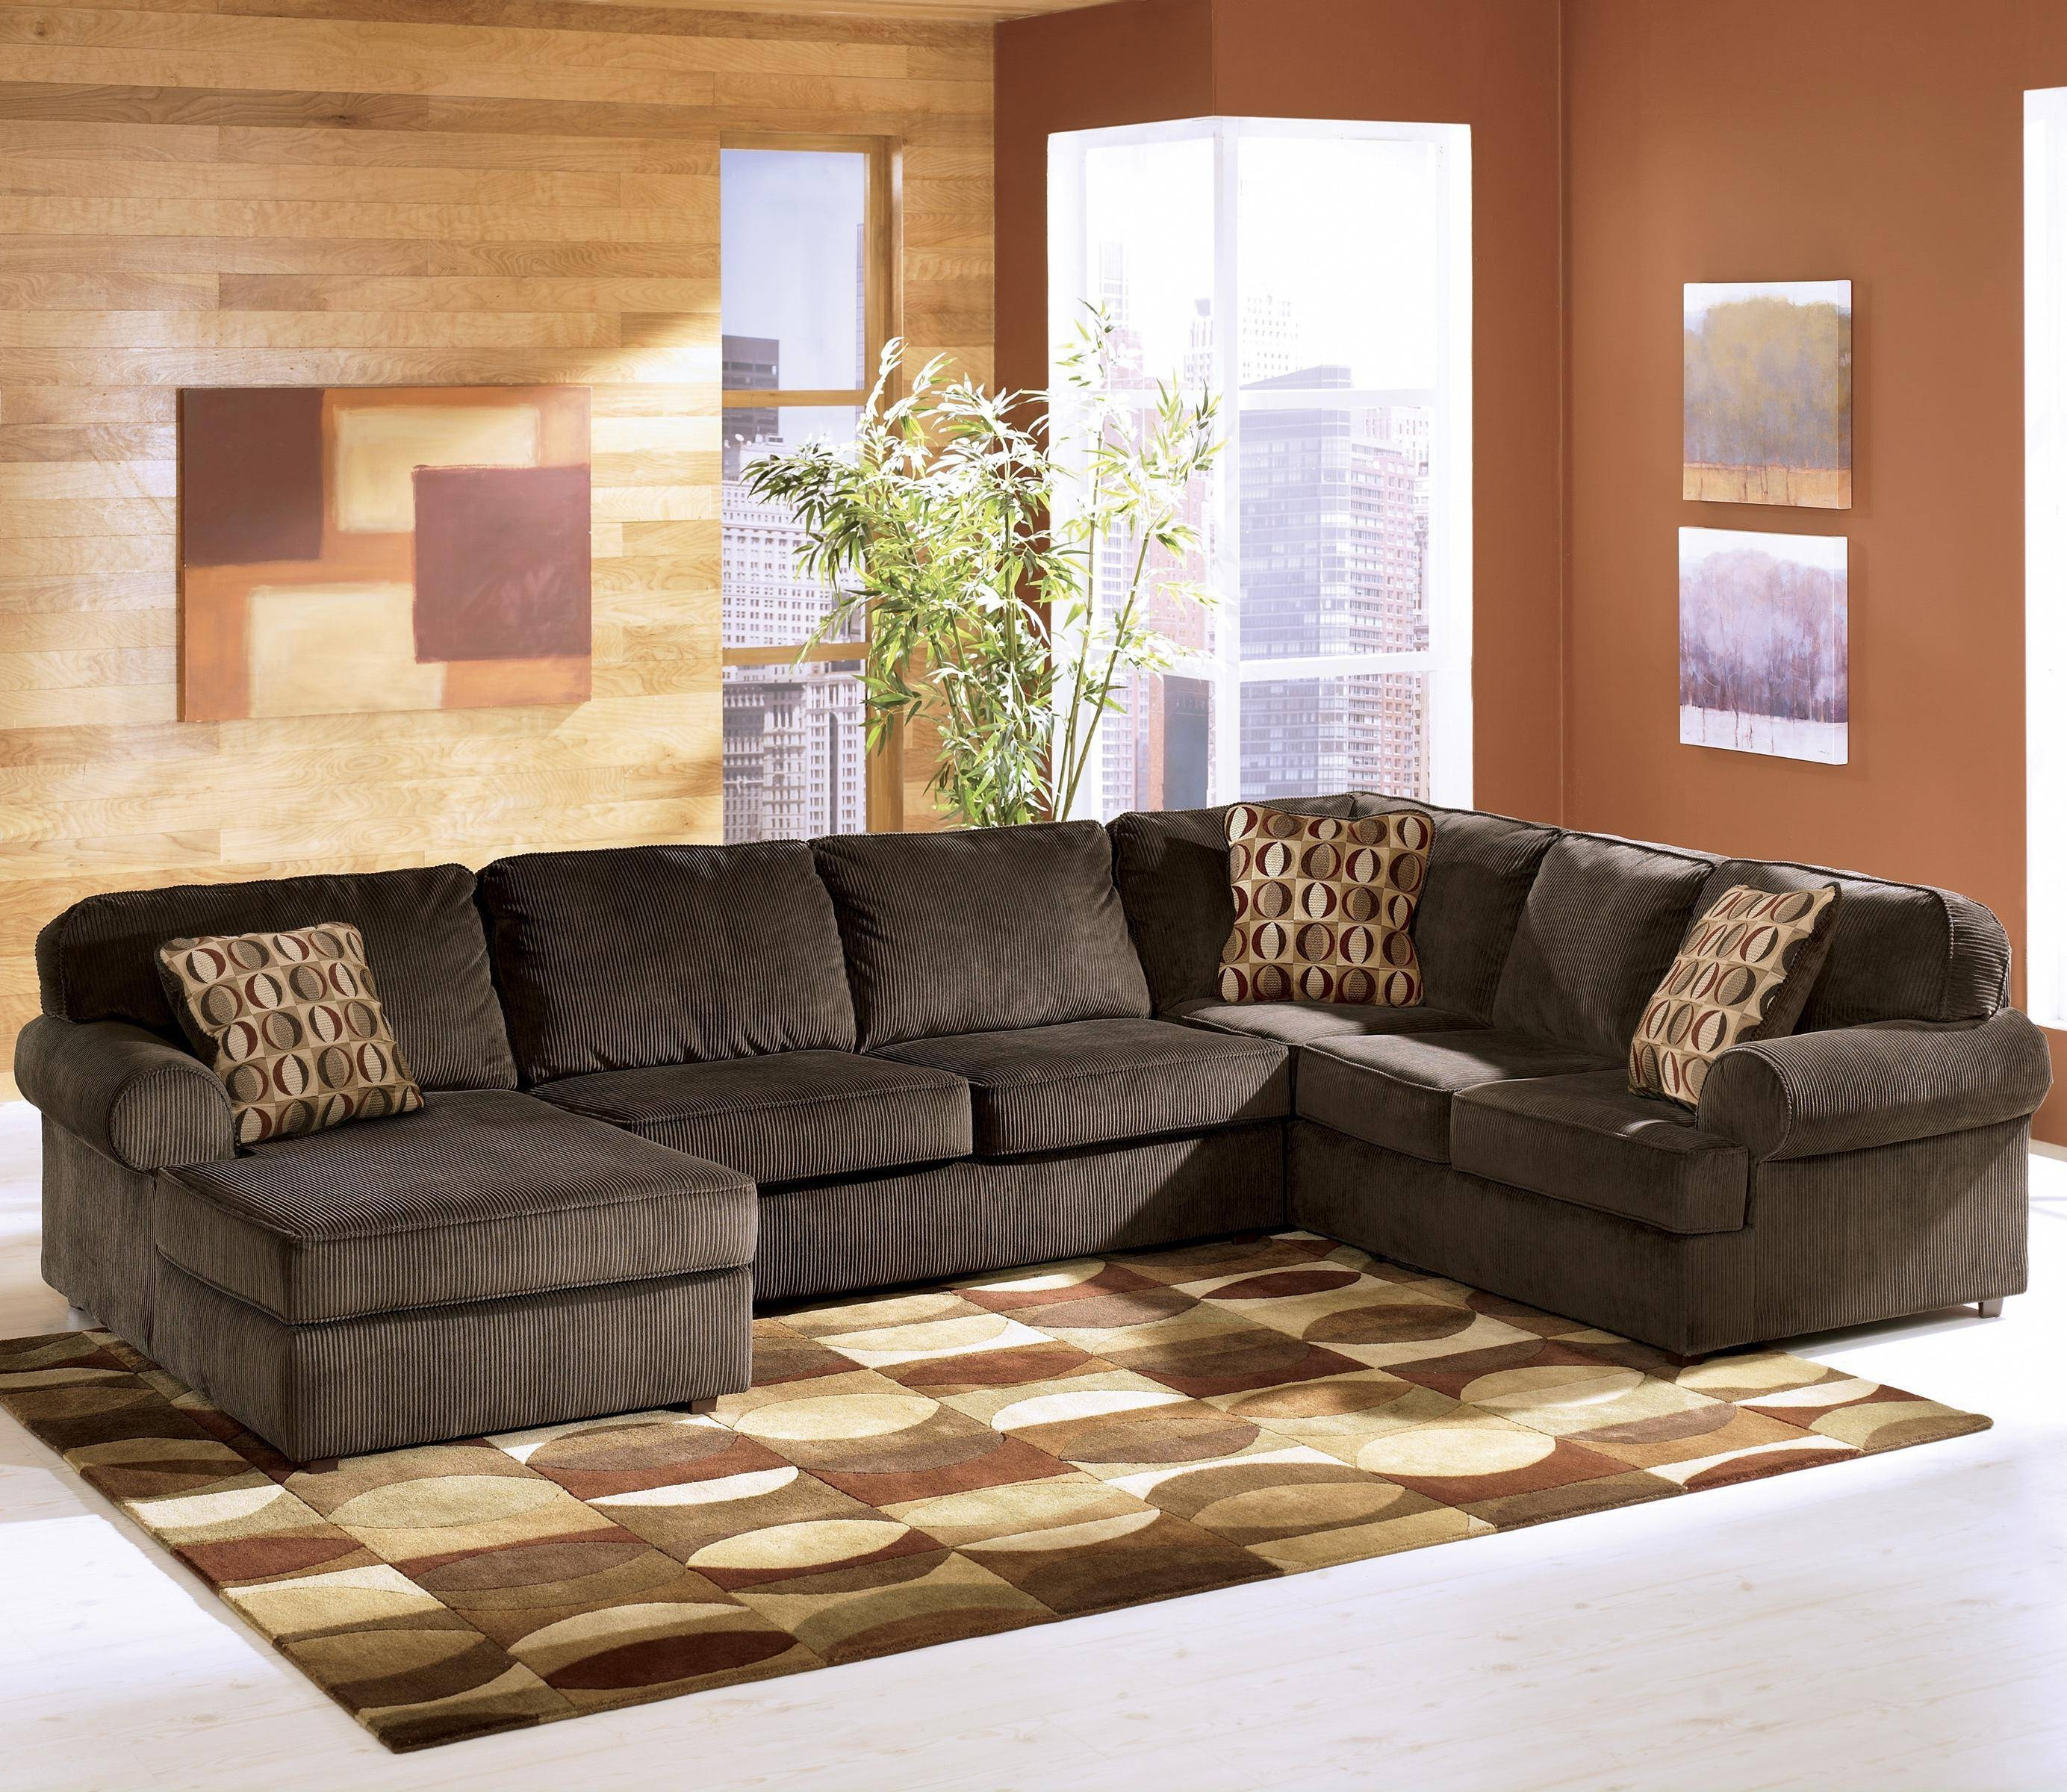 Ashley Furntiure: 15 Inspirations Of Ashley Furniture Brown Corduroy